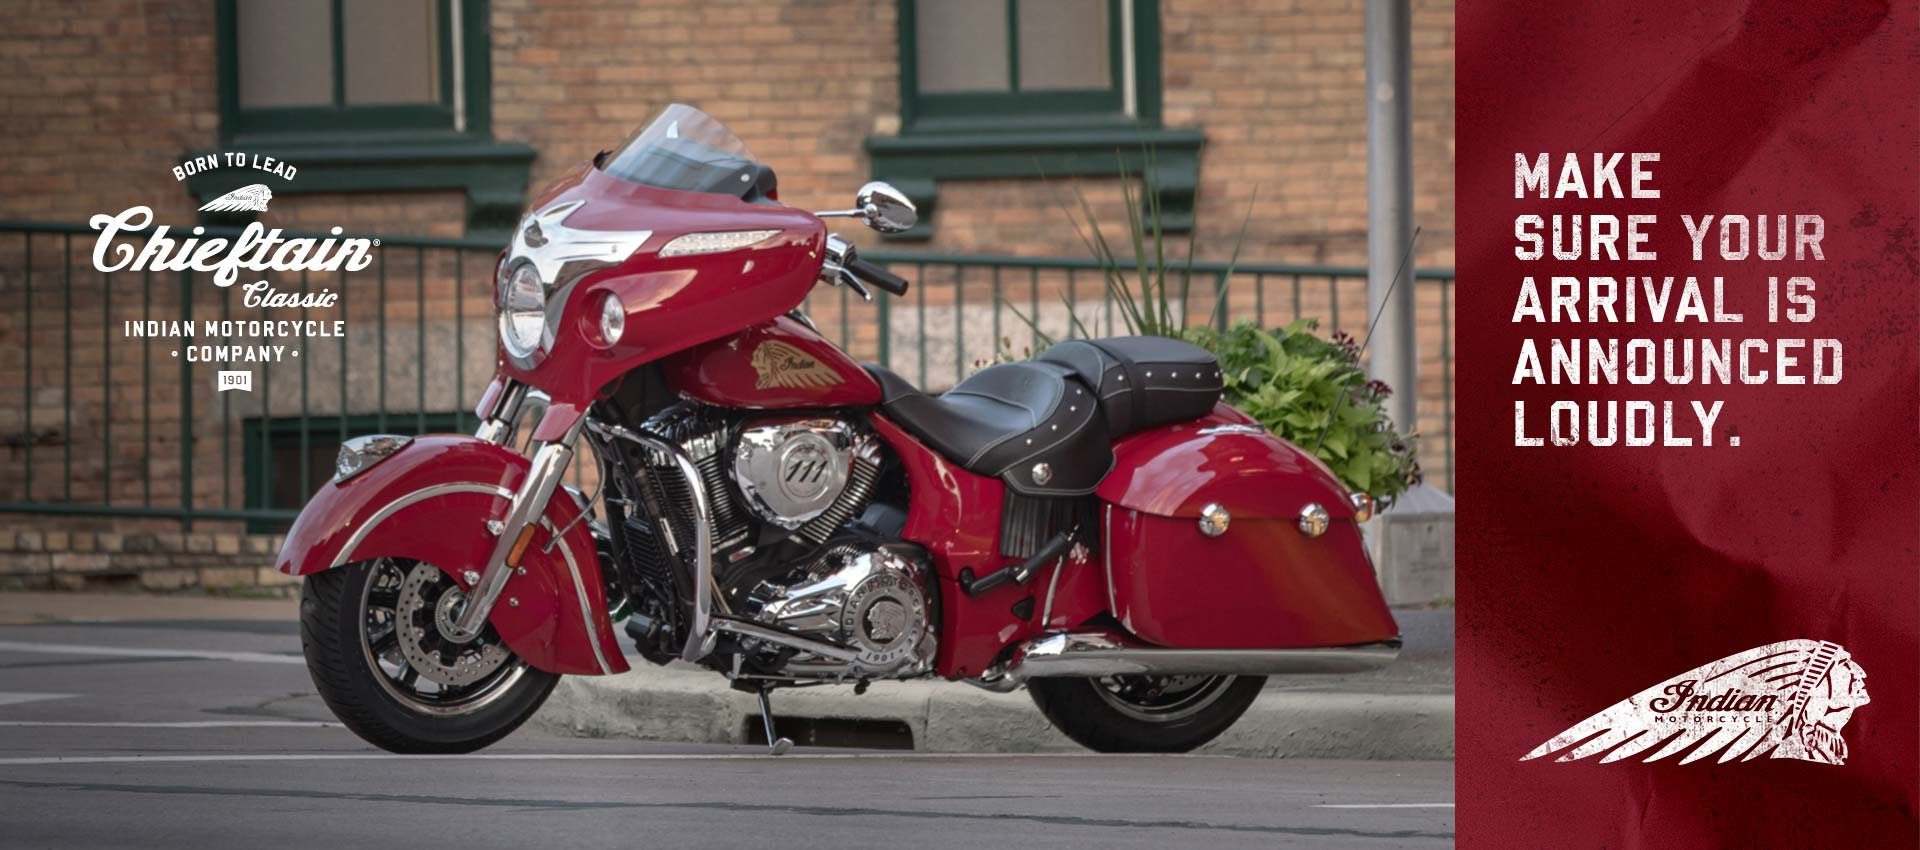 indian-chieftain-classic